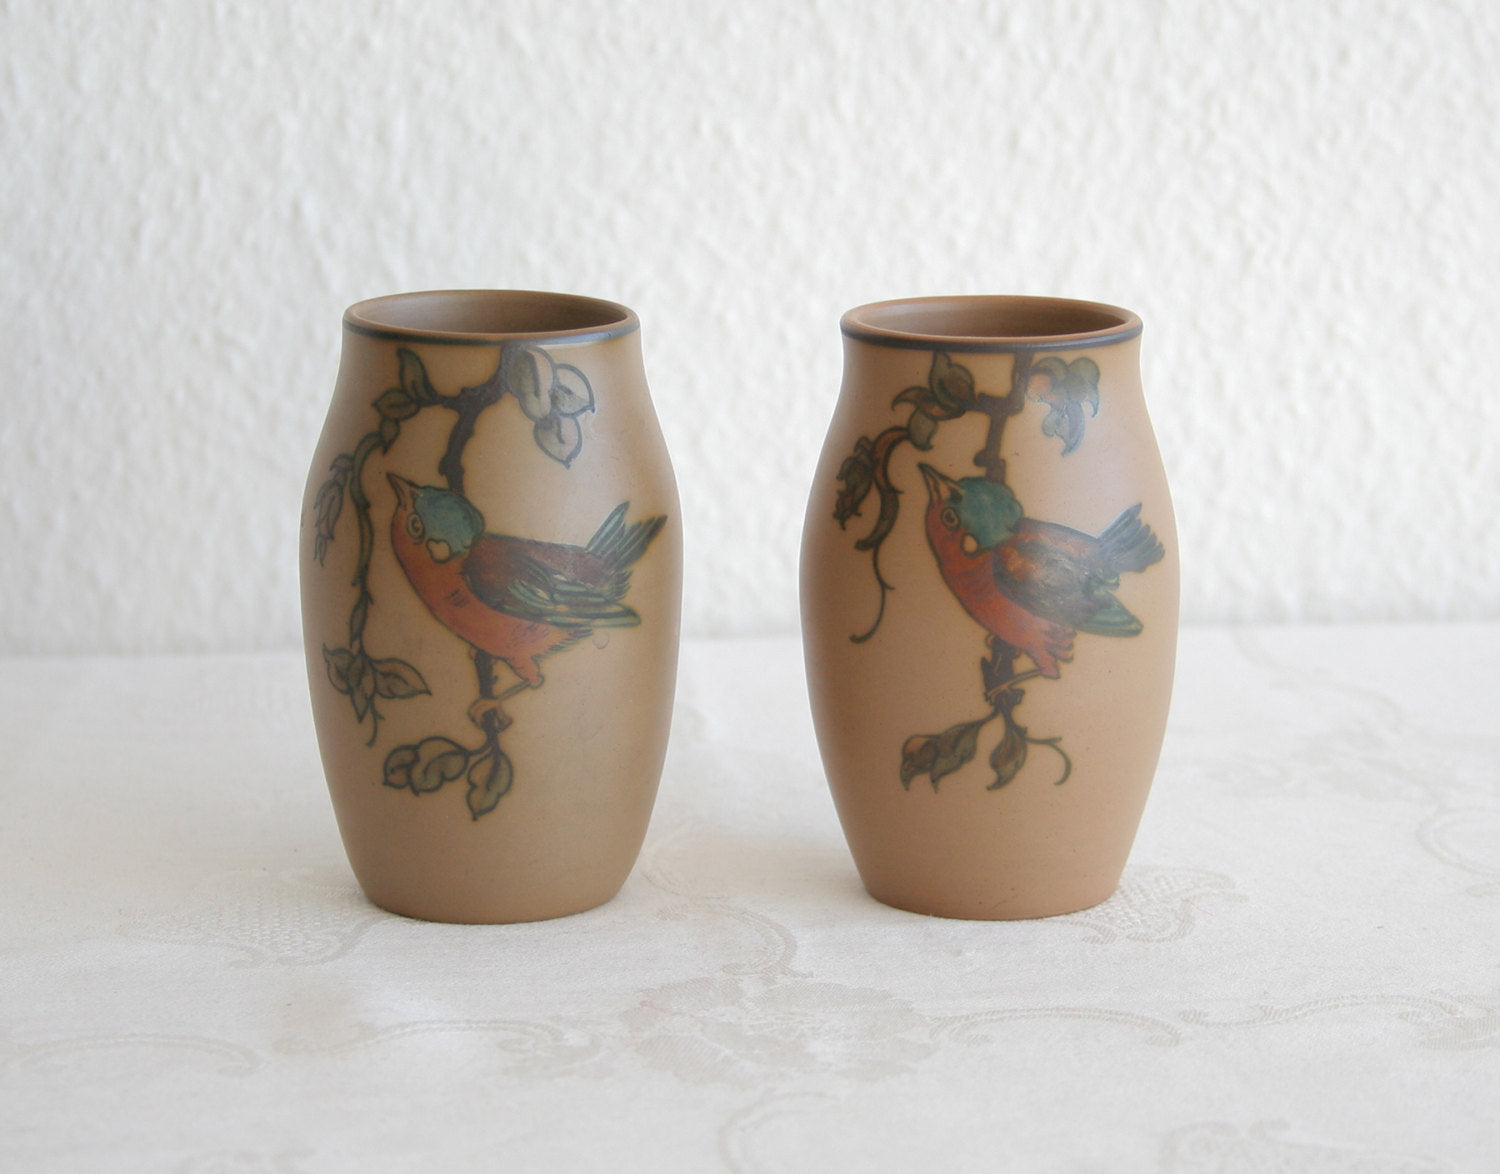 Pair of L. HJORTH Small Bird Decorated Ceramic Vases - Mollaris.com